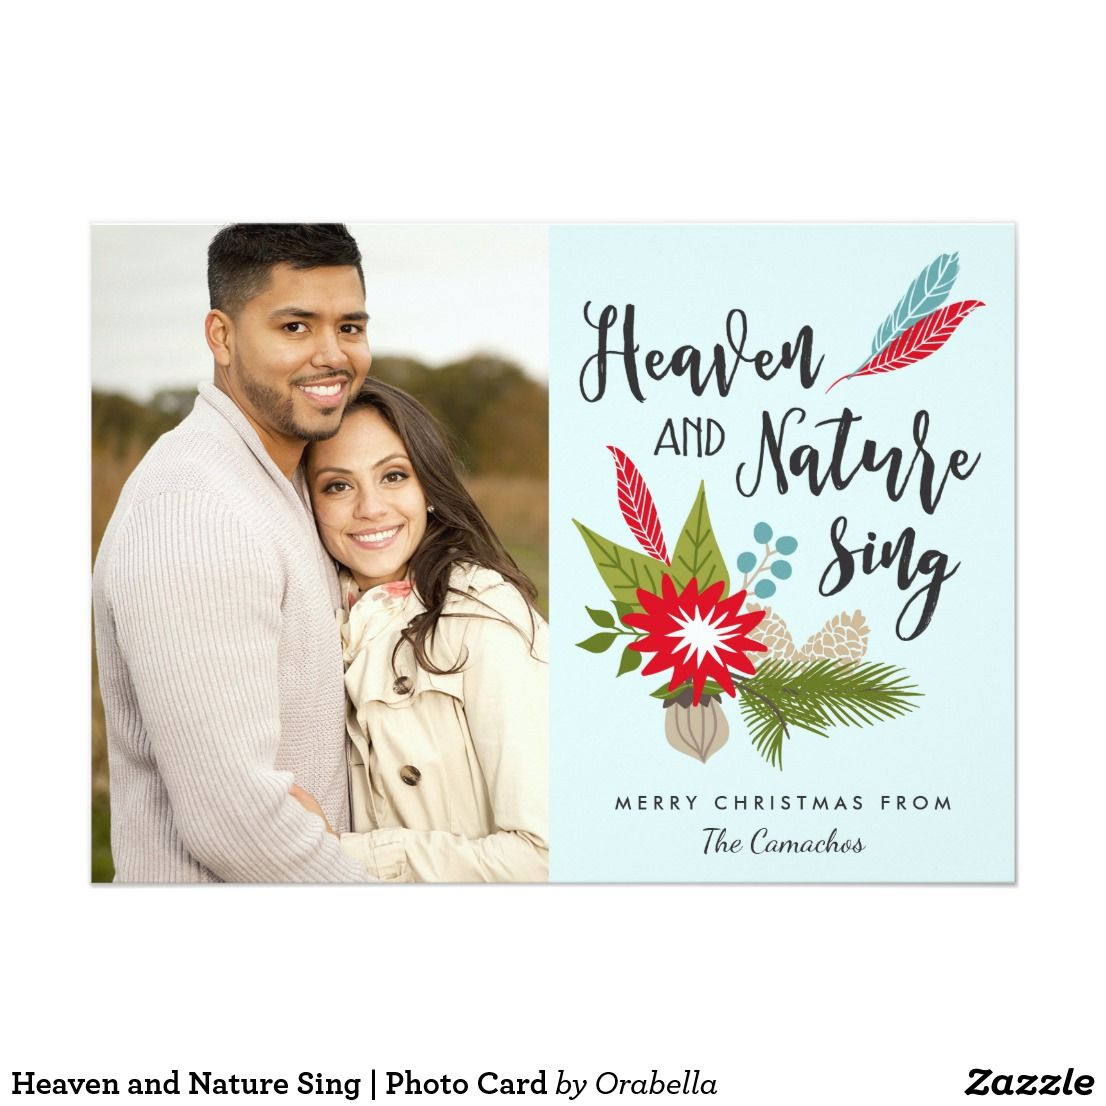 Heaven and Nature Sing | Photo Card